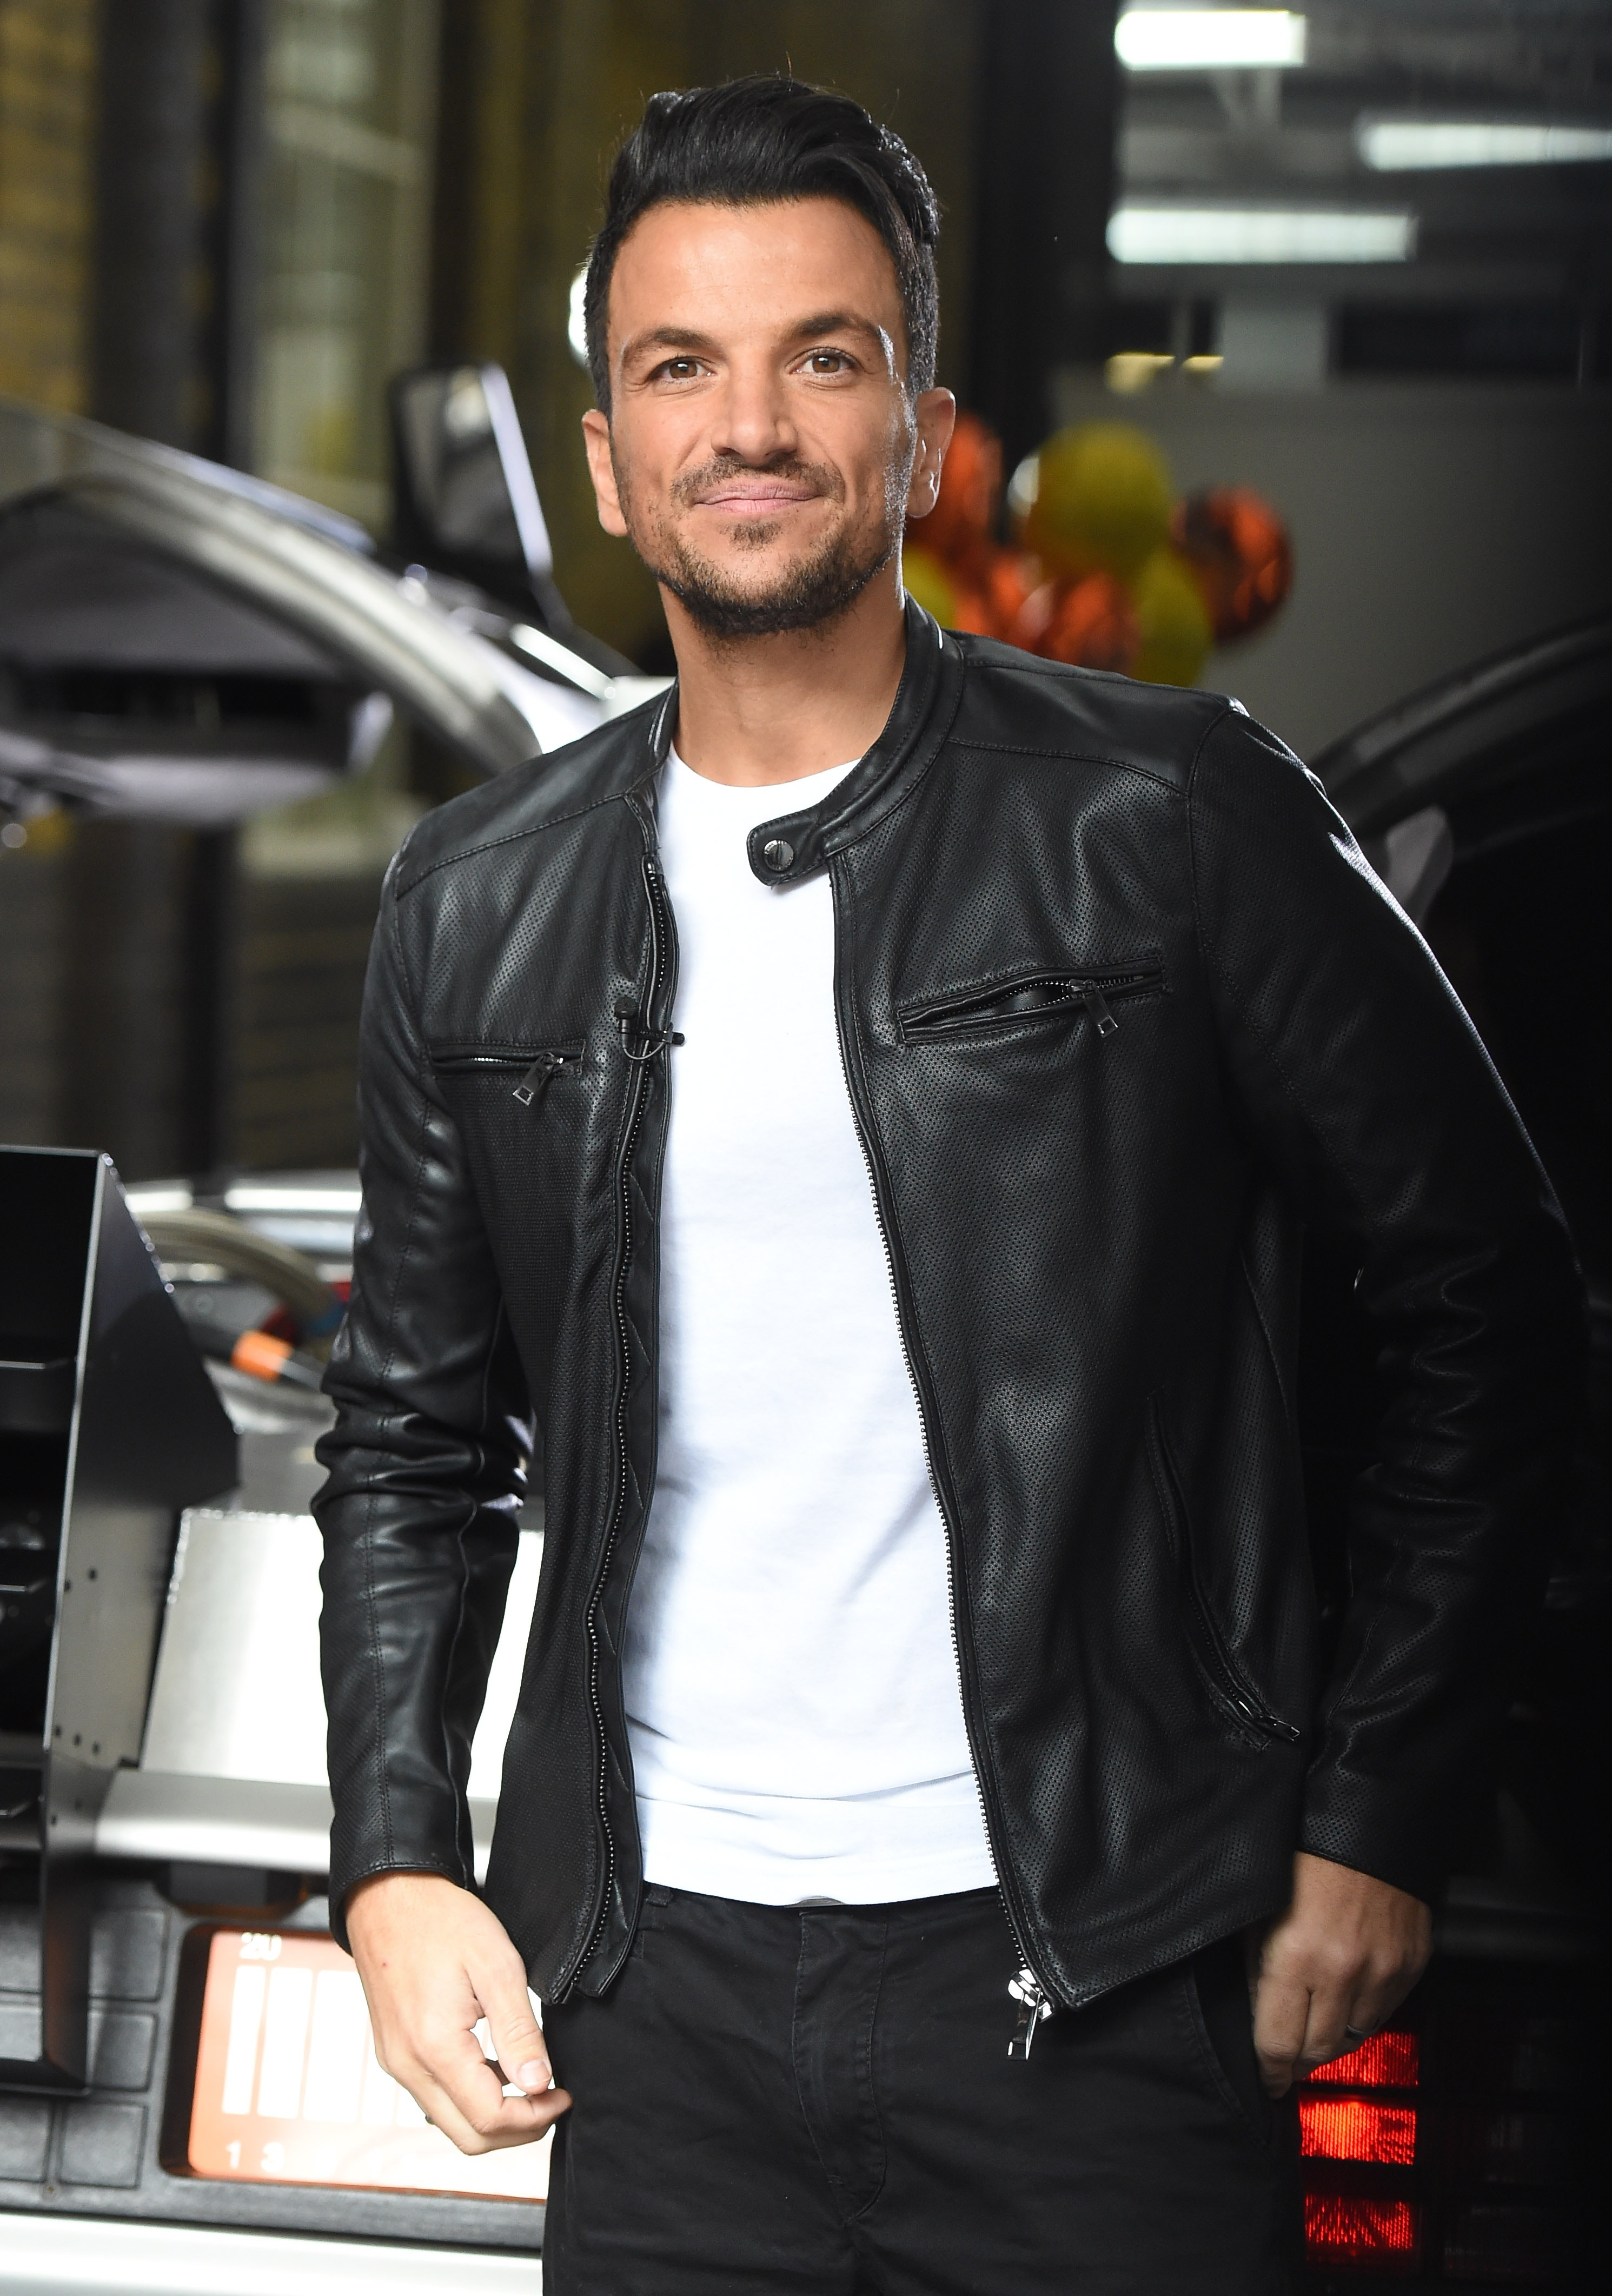 Picture Shows: Peter Andre October 20, 2015 Celebrities seen at the ITV studios in London, UK. Guests took the chance to pose with the DeLorean car parked in the ITV studios garage in celebration of the upcoming 'Back To The Future' day. Non-Exclusive WORLDWIDE RIGHTS Pictures by : FameFlynet UK © 2015 Tel : +44 (0)20 3551 5049 Email : info@fameflynet.uk.com